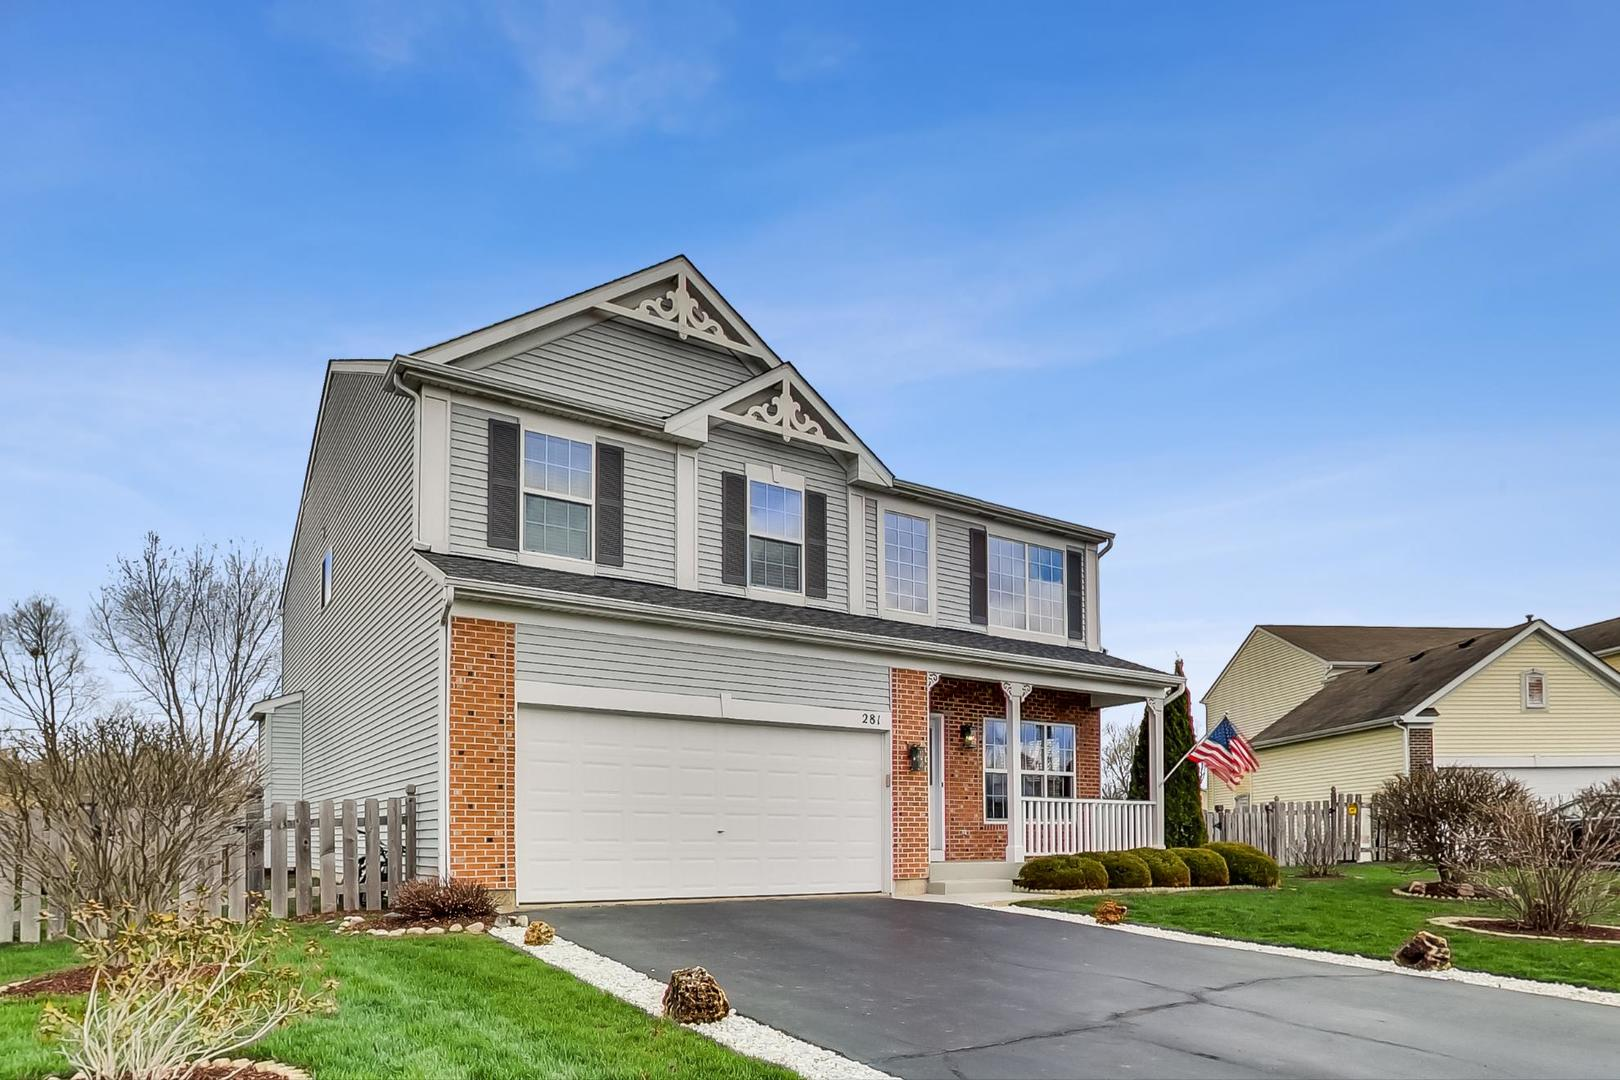 Photo for 281 Clover Chase Circle, Woodstock, IL 60098 (MLS # 10638087)